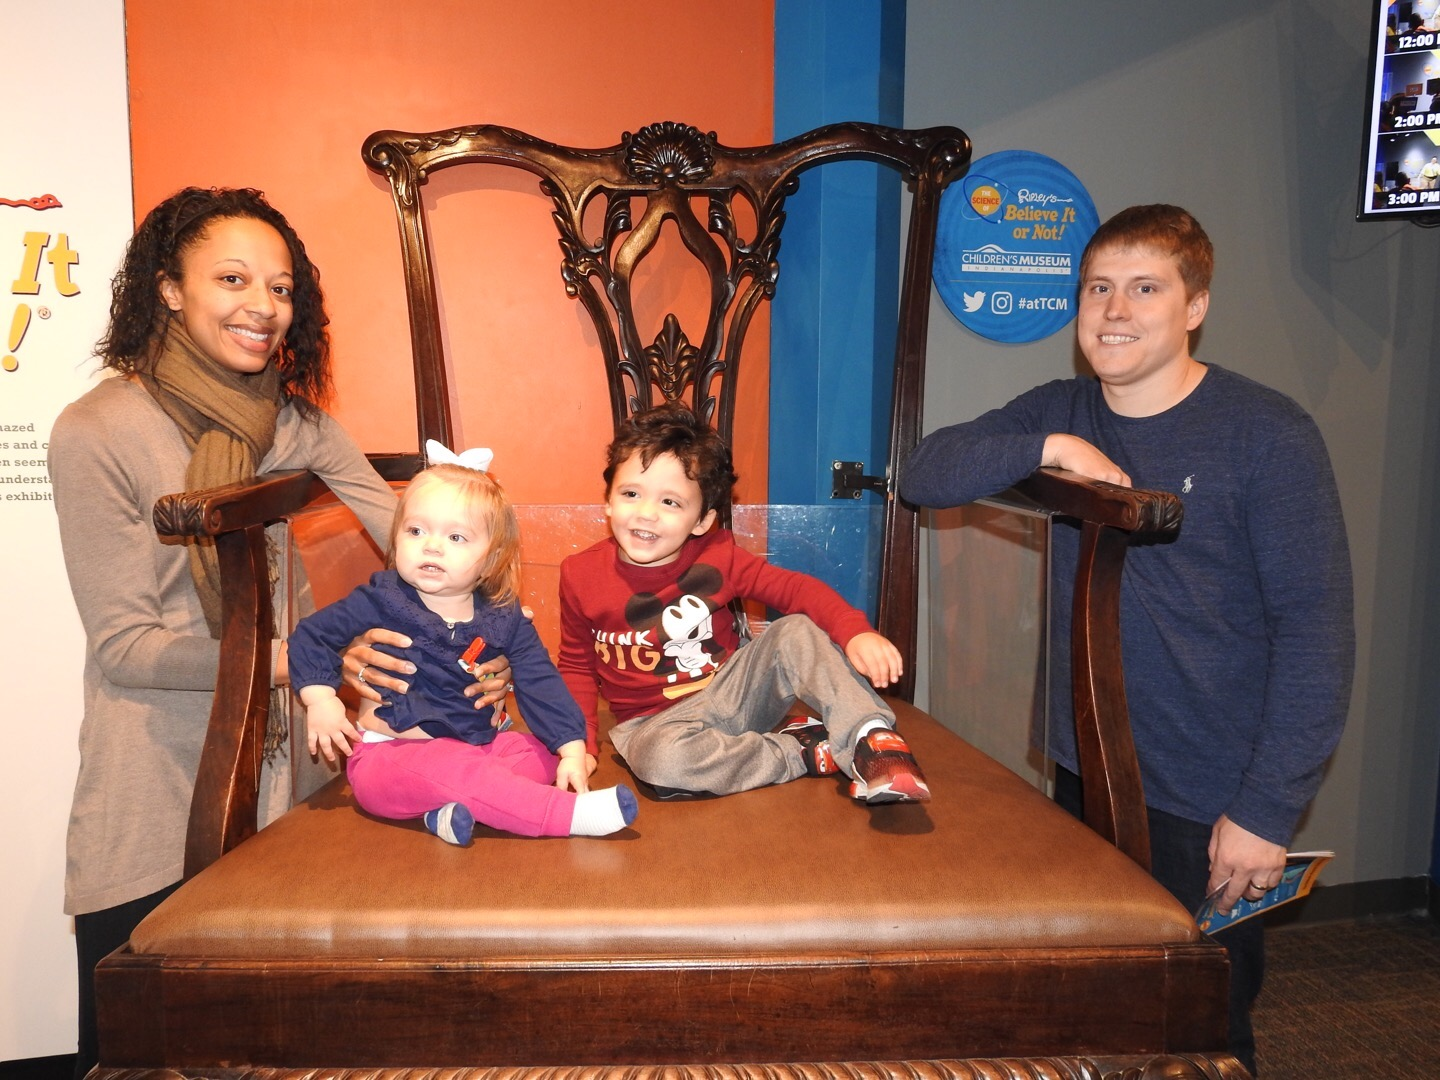 First Year Post-Transplant - Indianapolis Children's Museum of Indianapolis